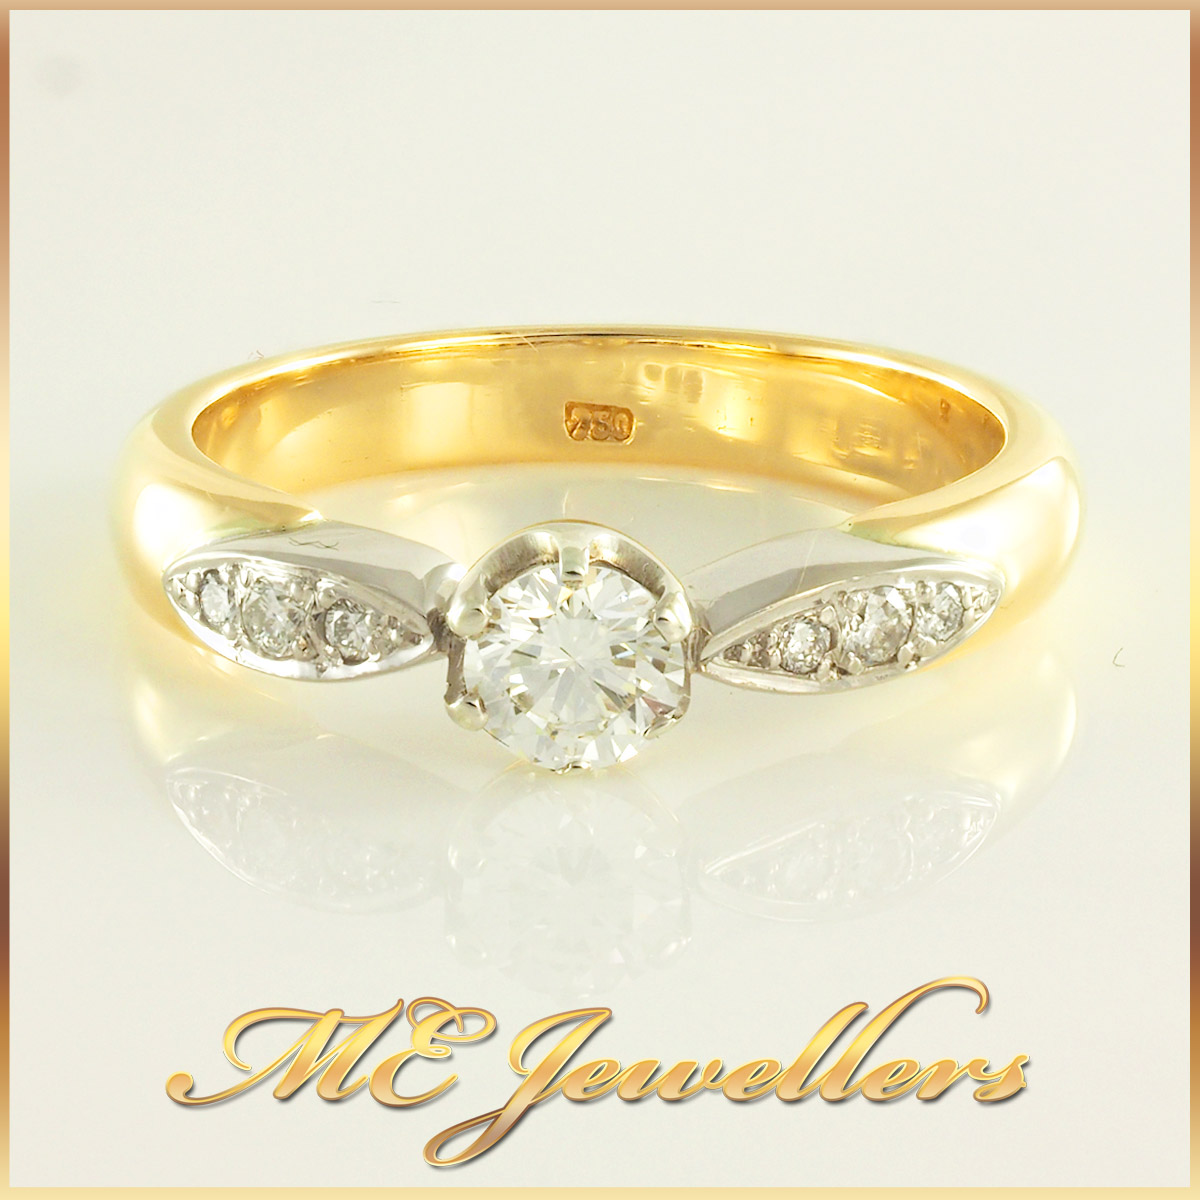 2811 -18K Gold Diamond Engagement Ring Sz Q 1/2 2